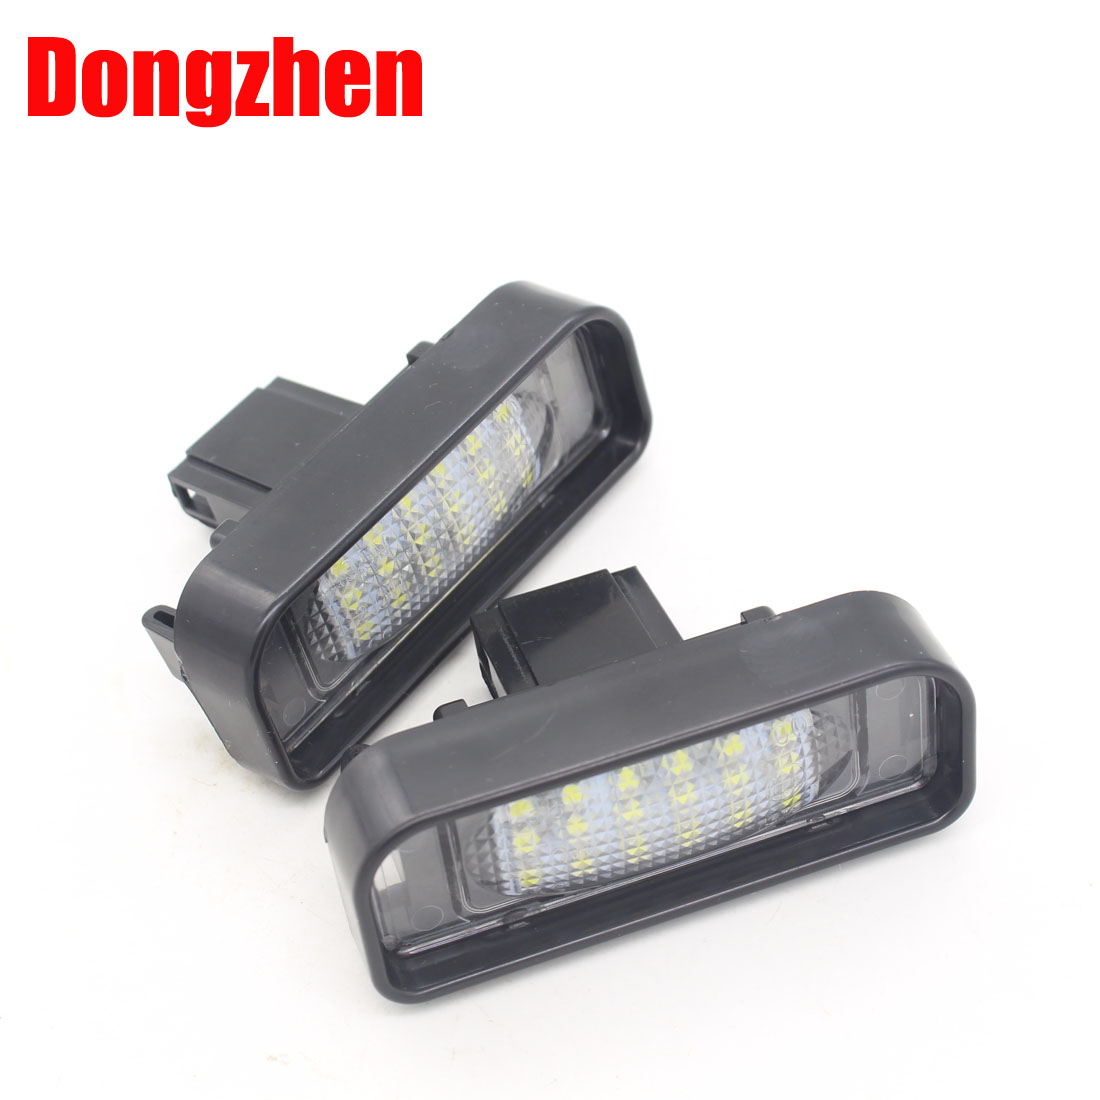 DongZhen Car Error Free 18LED 3528SMD License Plate Light Lamp Fit For Mercedes Benz S Class W220 Bright White 1999-2005 10pcs error free led lamp interior light kit for mercedes for mercedes benz m class w163 ml320 ml350 ml430 ml500 ml55 amg 98 05